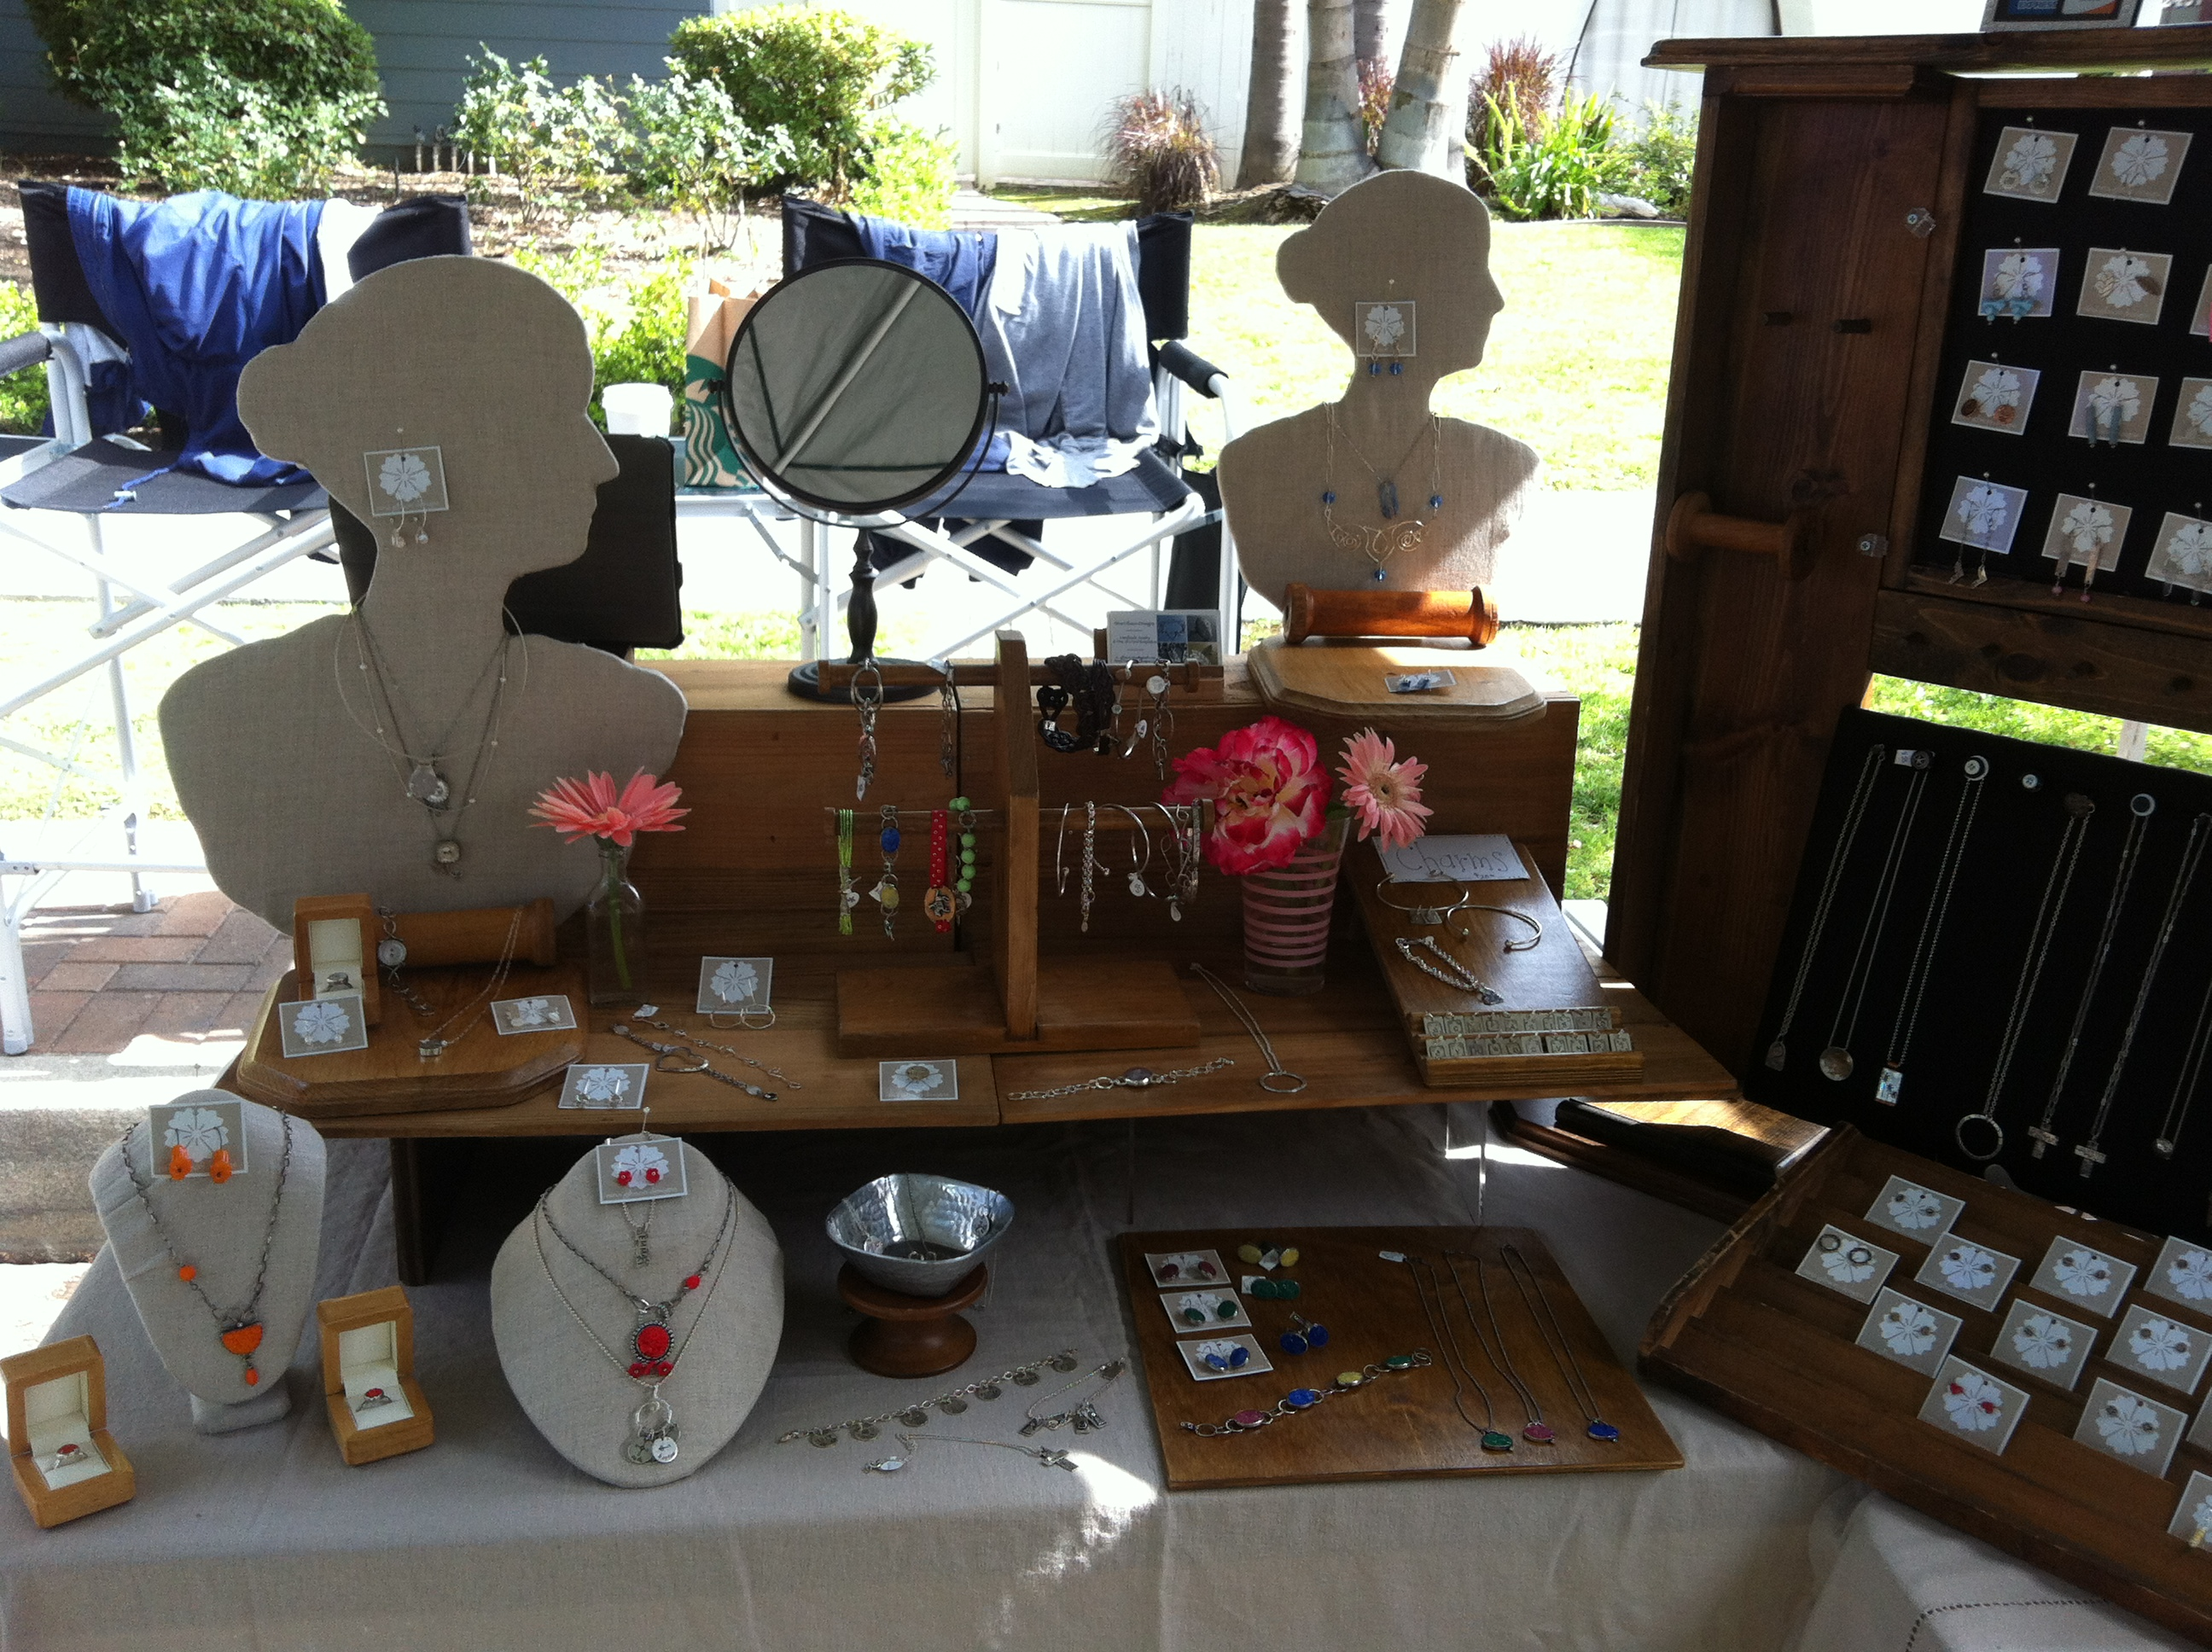 Eclectic & Welcoming Jewelry Booth